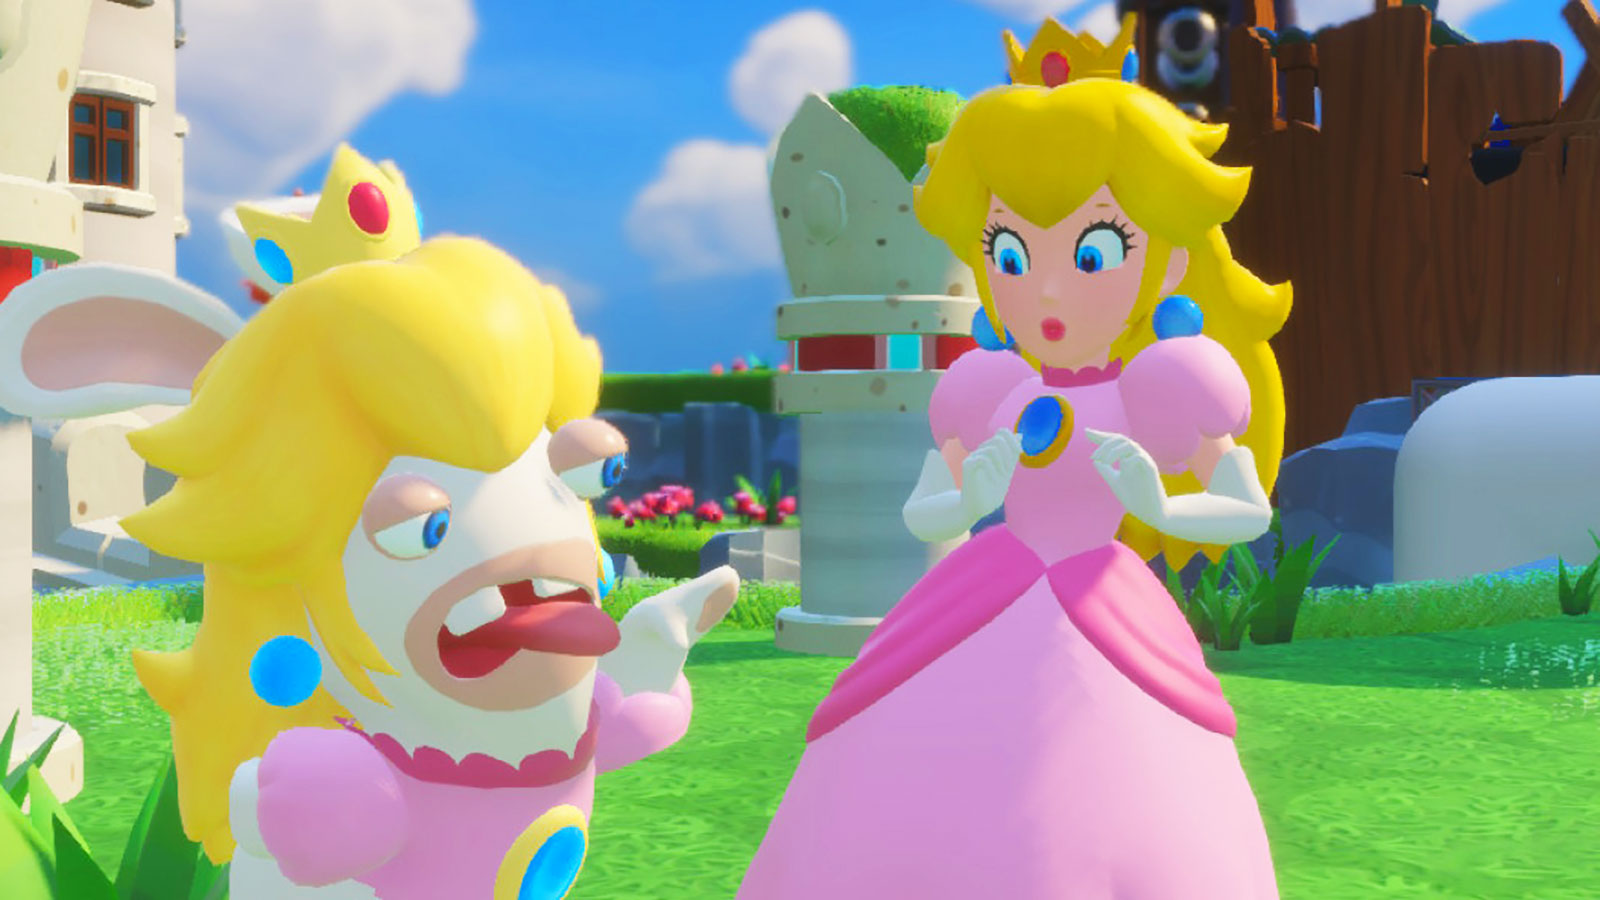 'Mario + Rabbids: Kingdom Battle' tempers insanity with charm